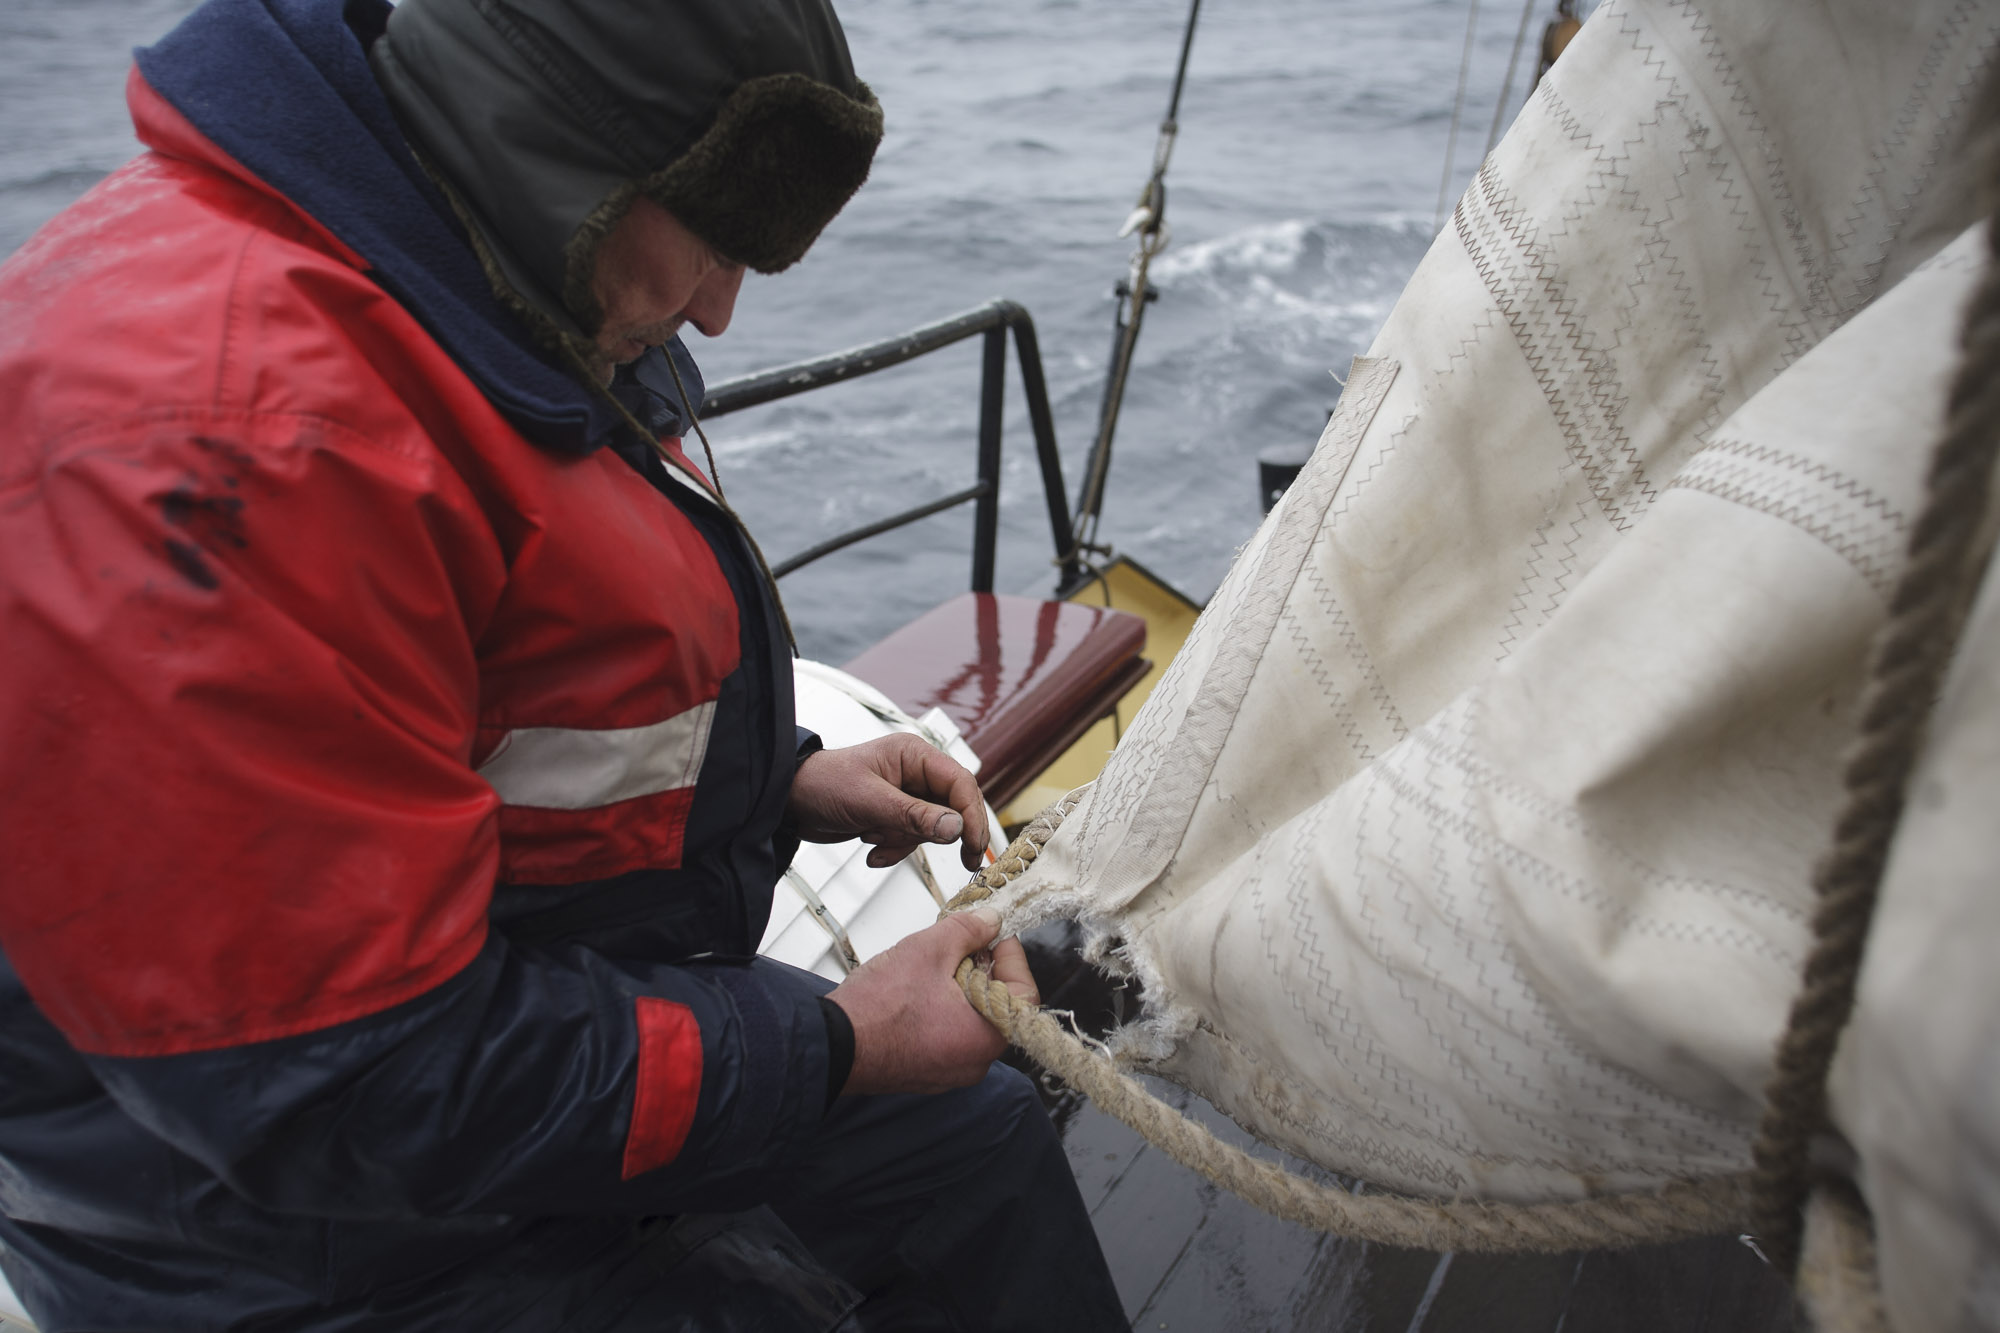 Mending the sails of Noorderlicht with cold hands